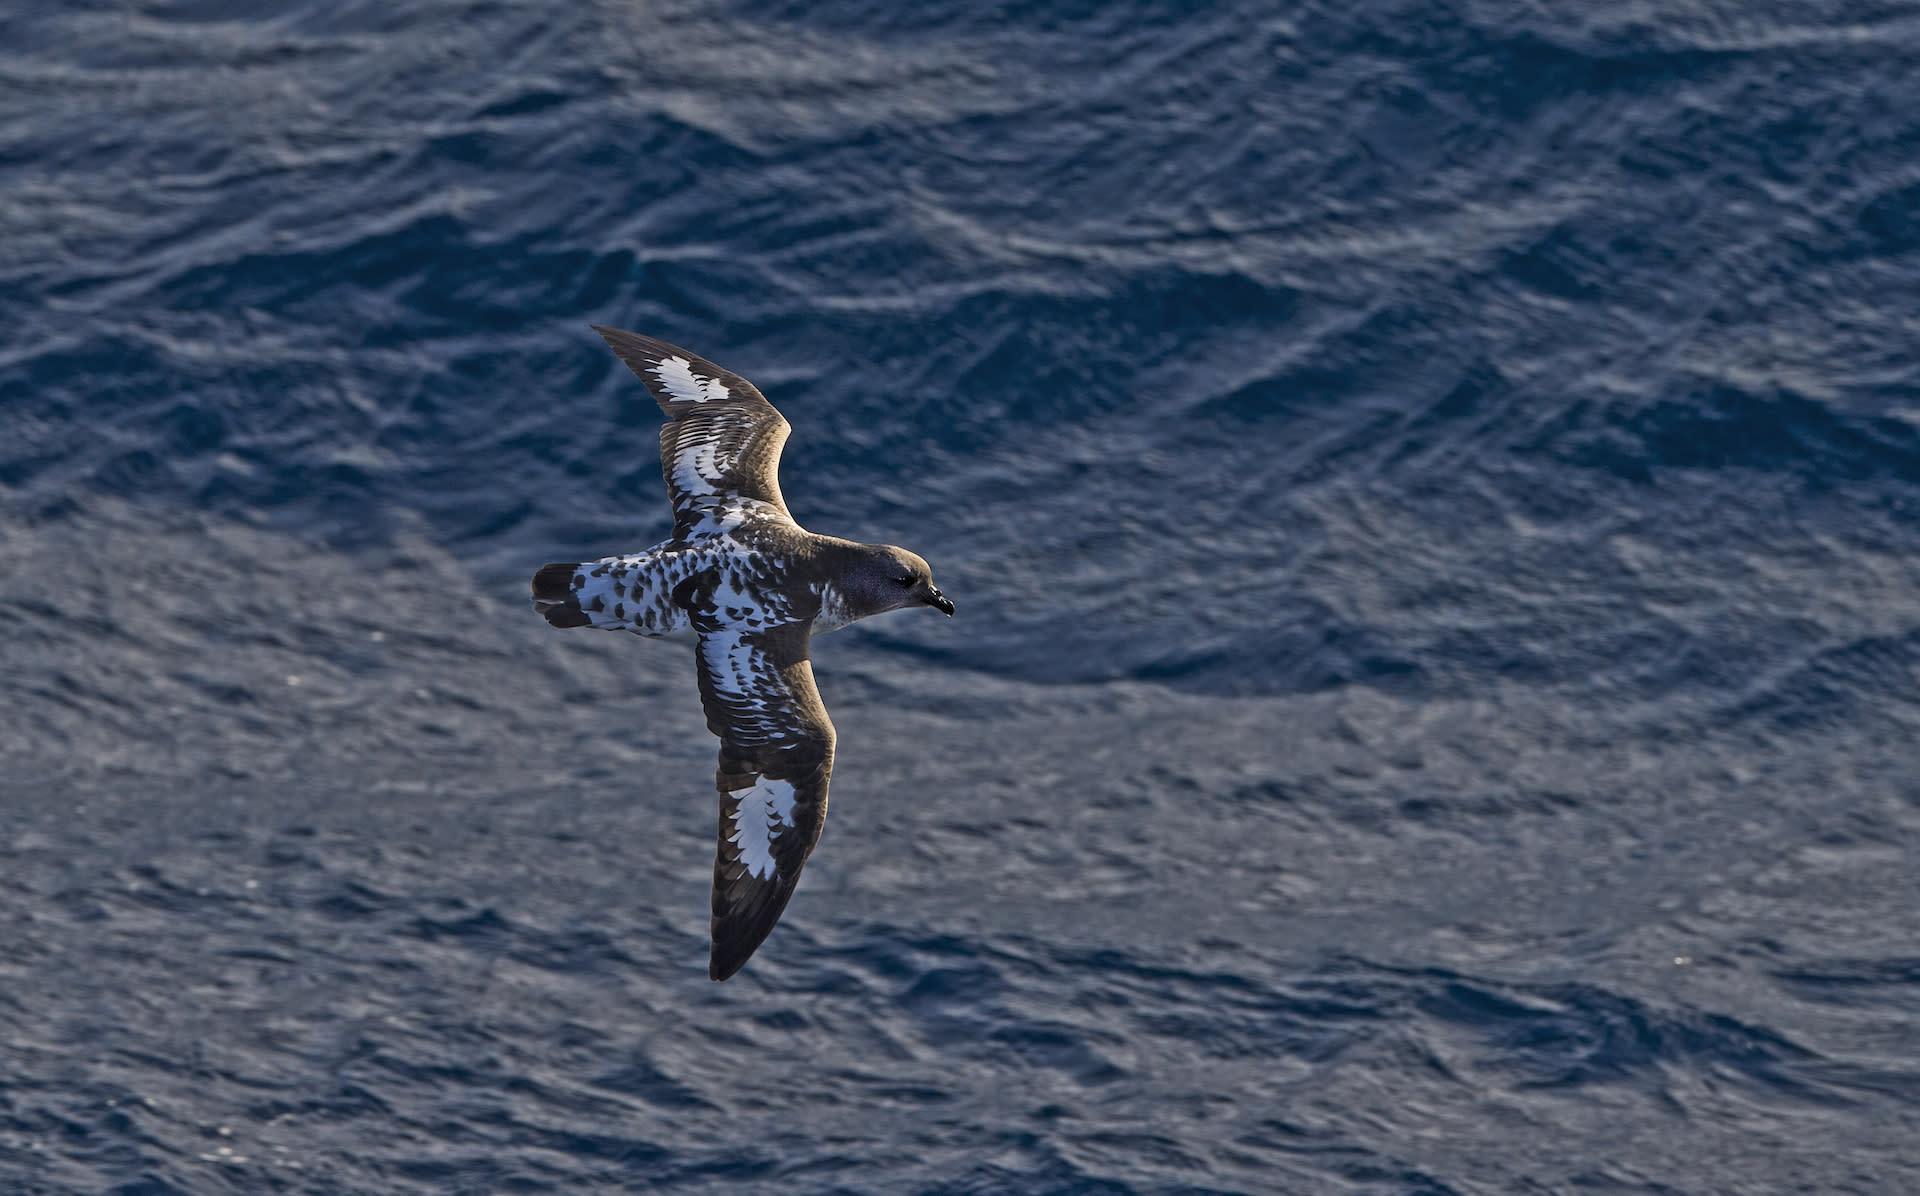 Sky birds are fewer in number, but more frequently sighted. Fulmers, albatross, and petrels (pictured here) are often seen following expedition ships, hoping for scraps. They all hunt for fish, but are opportunistic scavengers, known to help themselves to leftovers from orca kills.